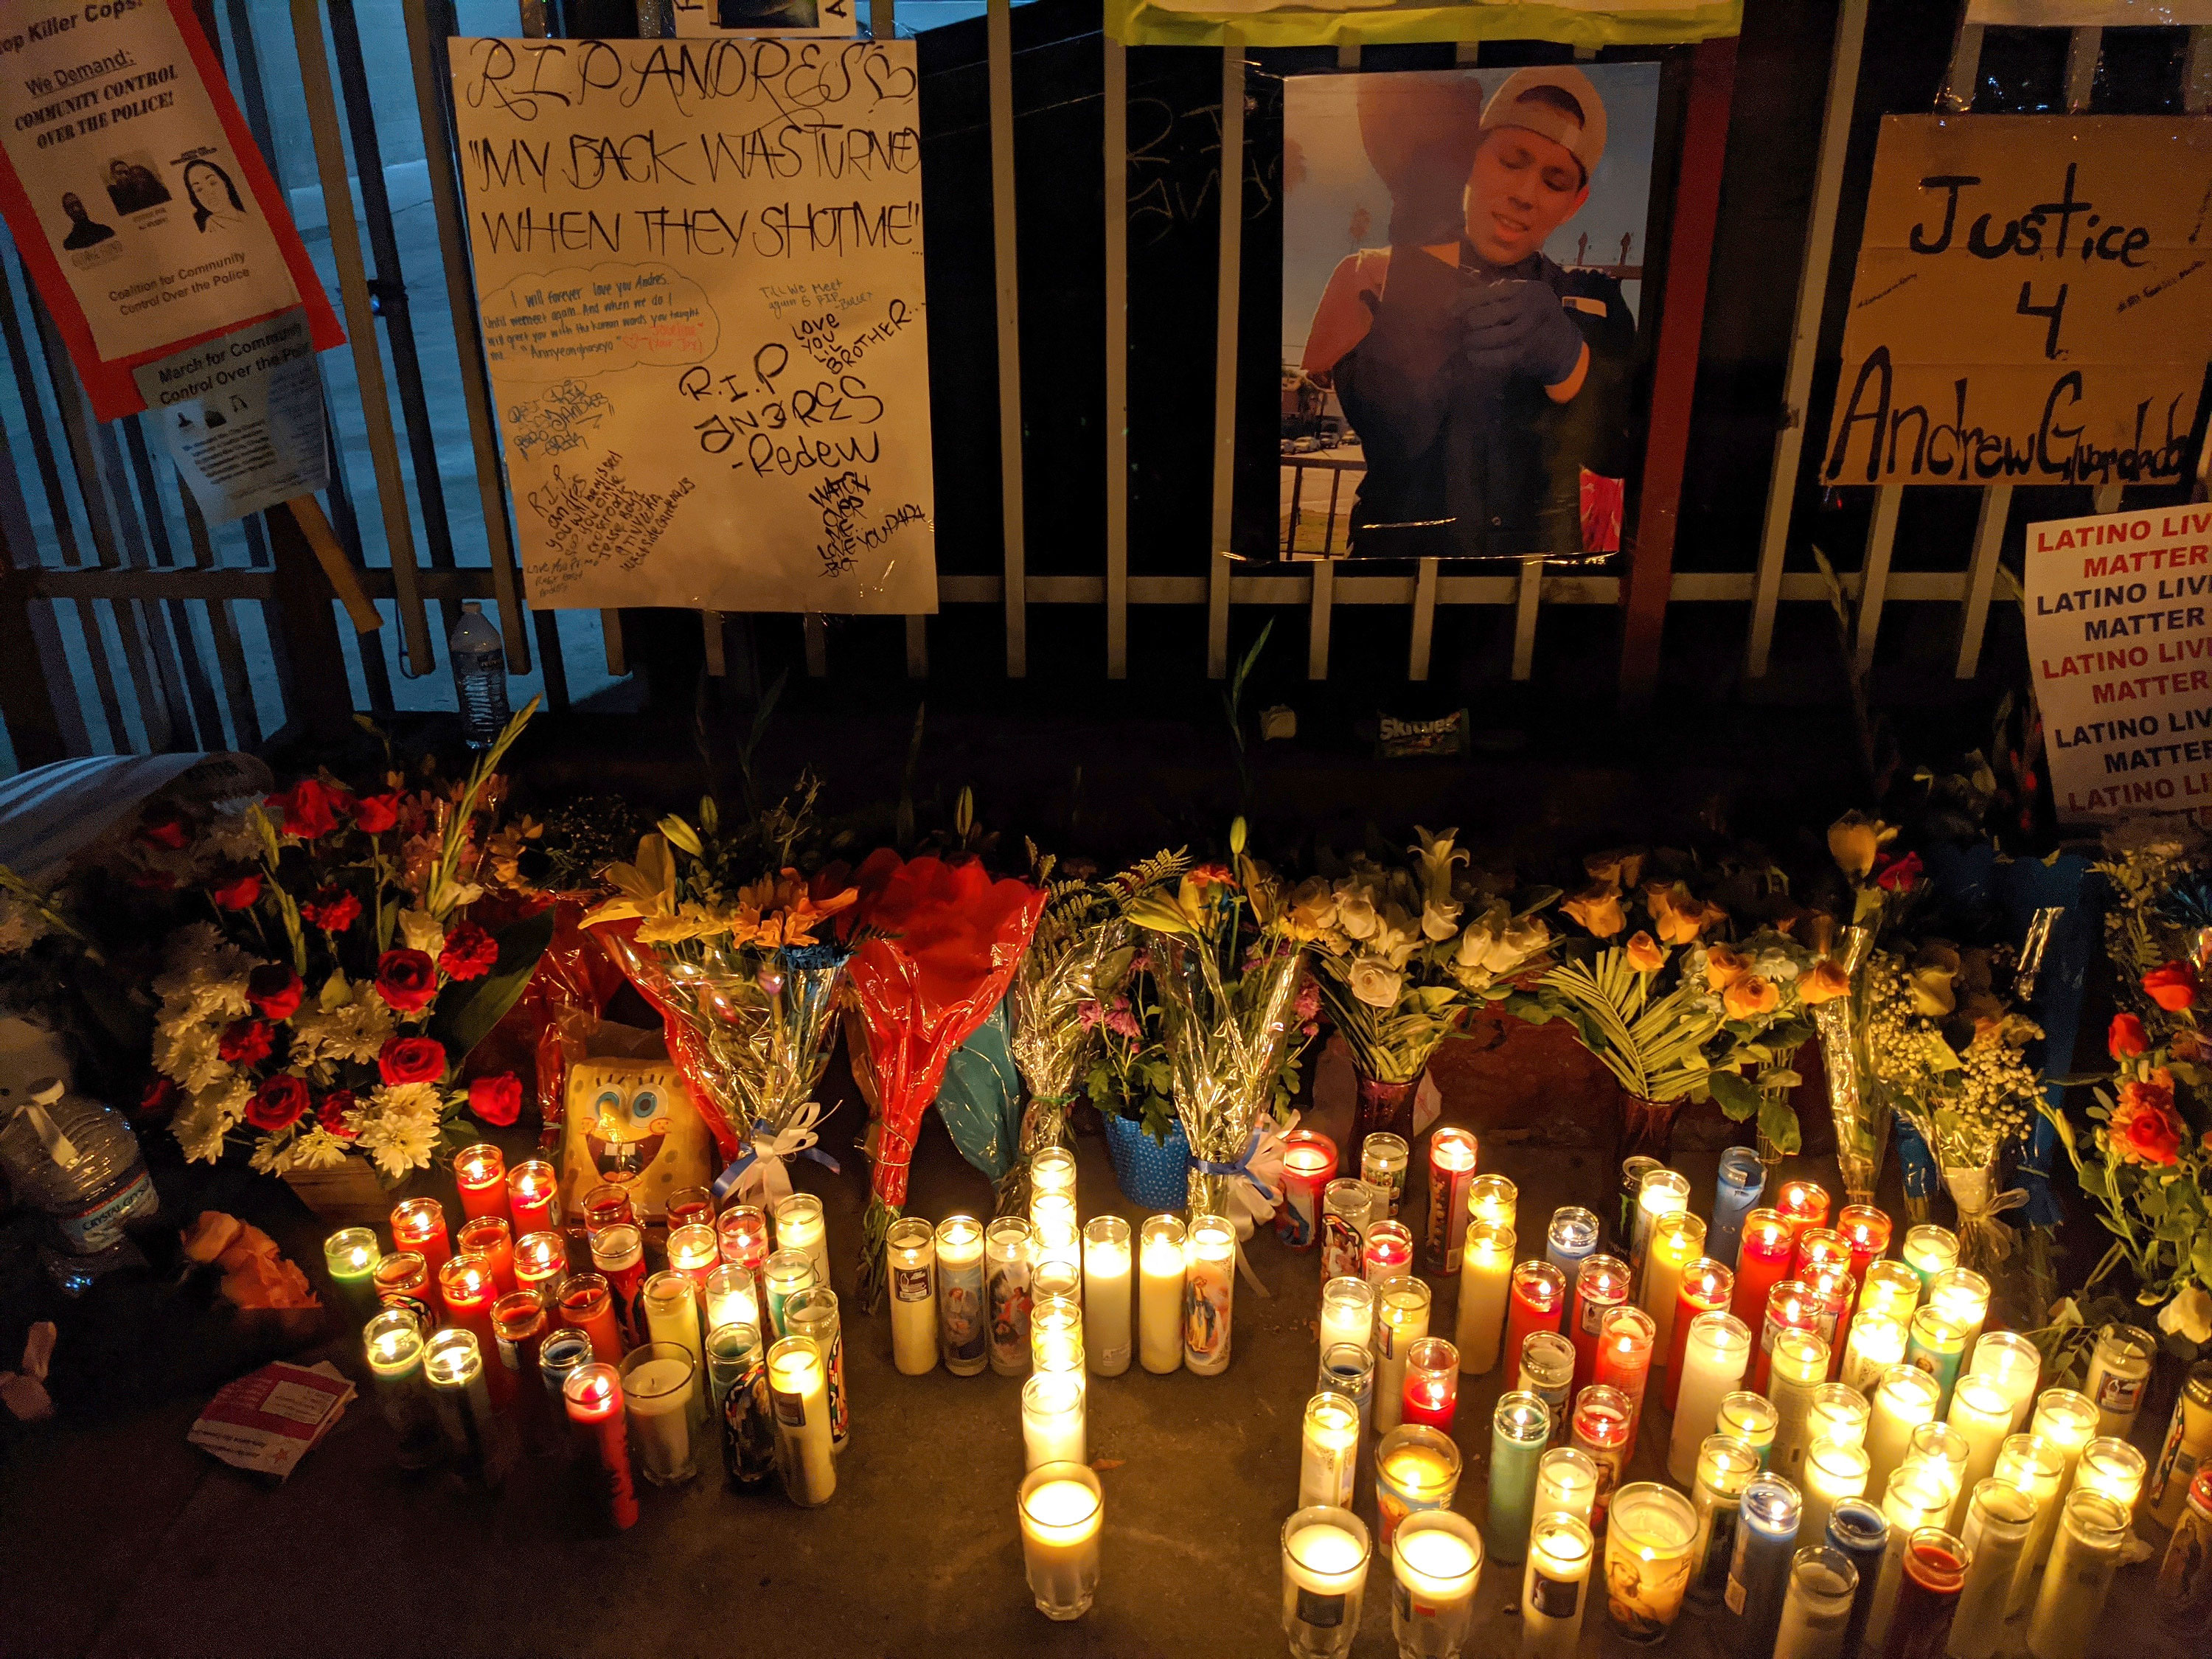 Candles and flowers are placed at a makeshift memorial for Andres Guardado on June 19 in Gardena, California.